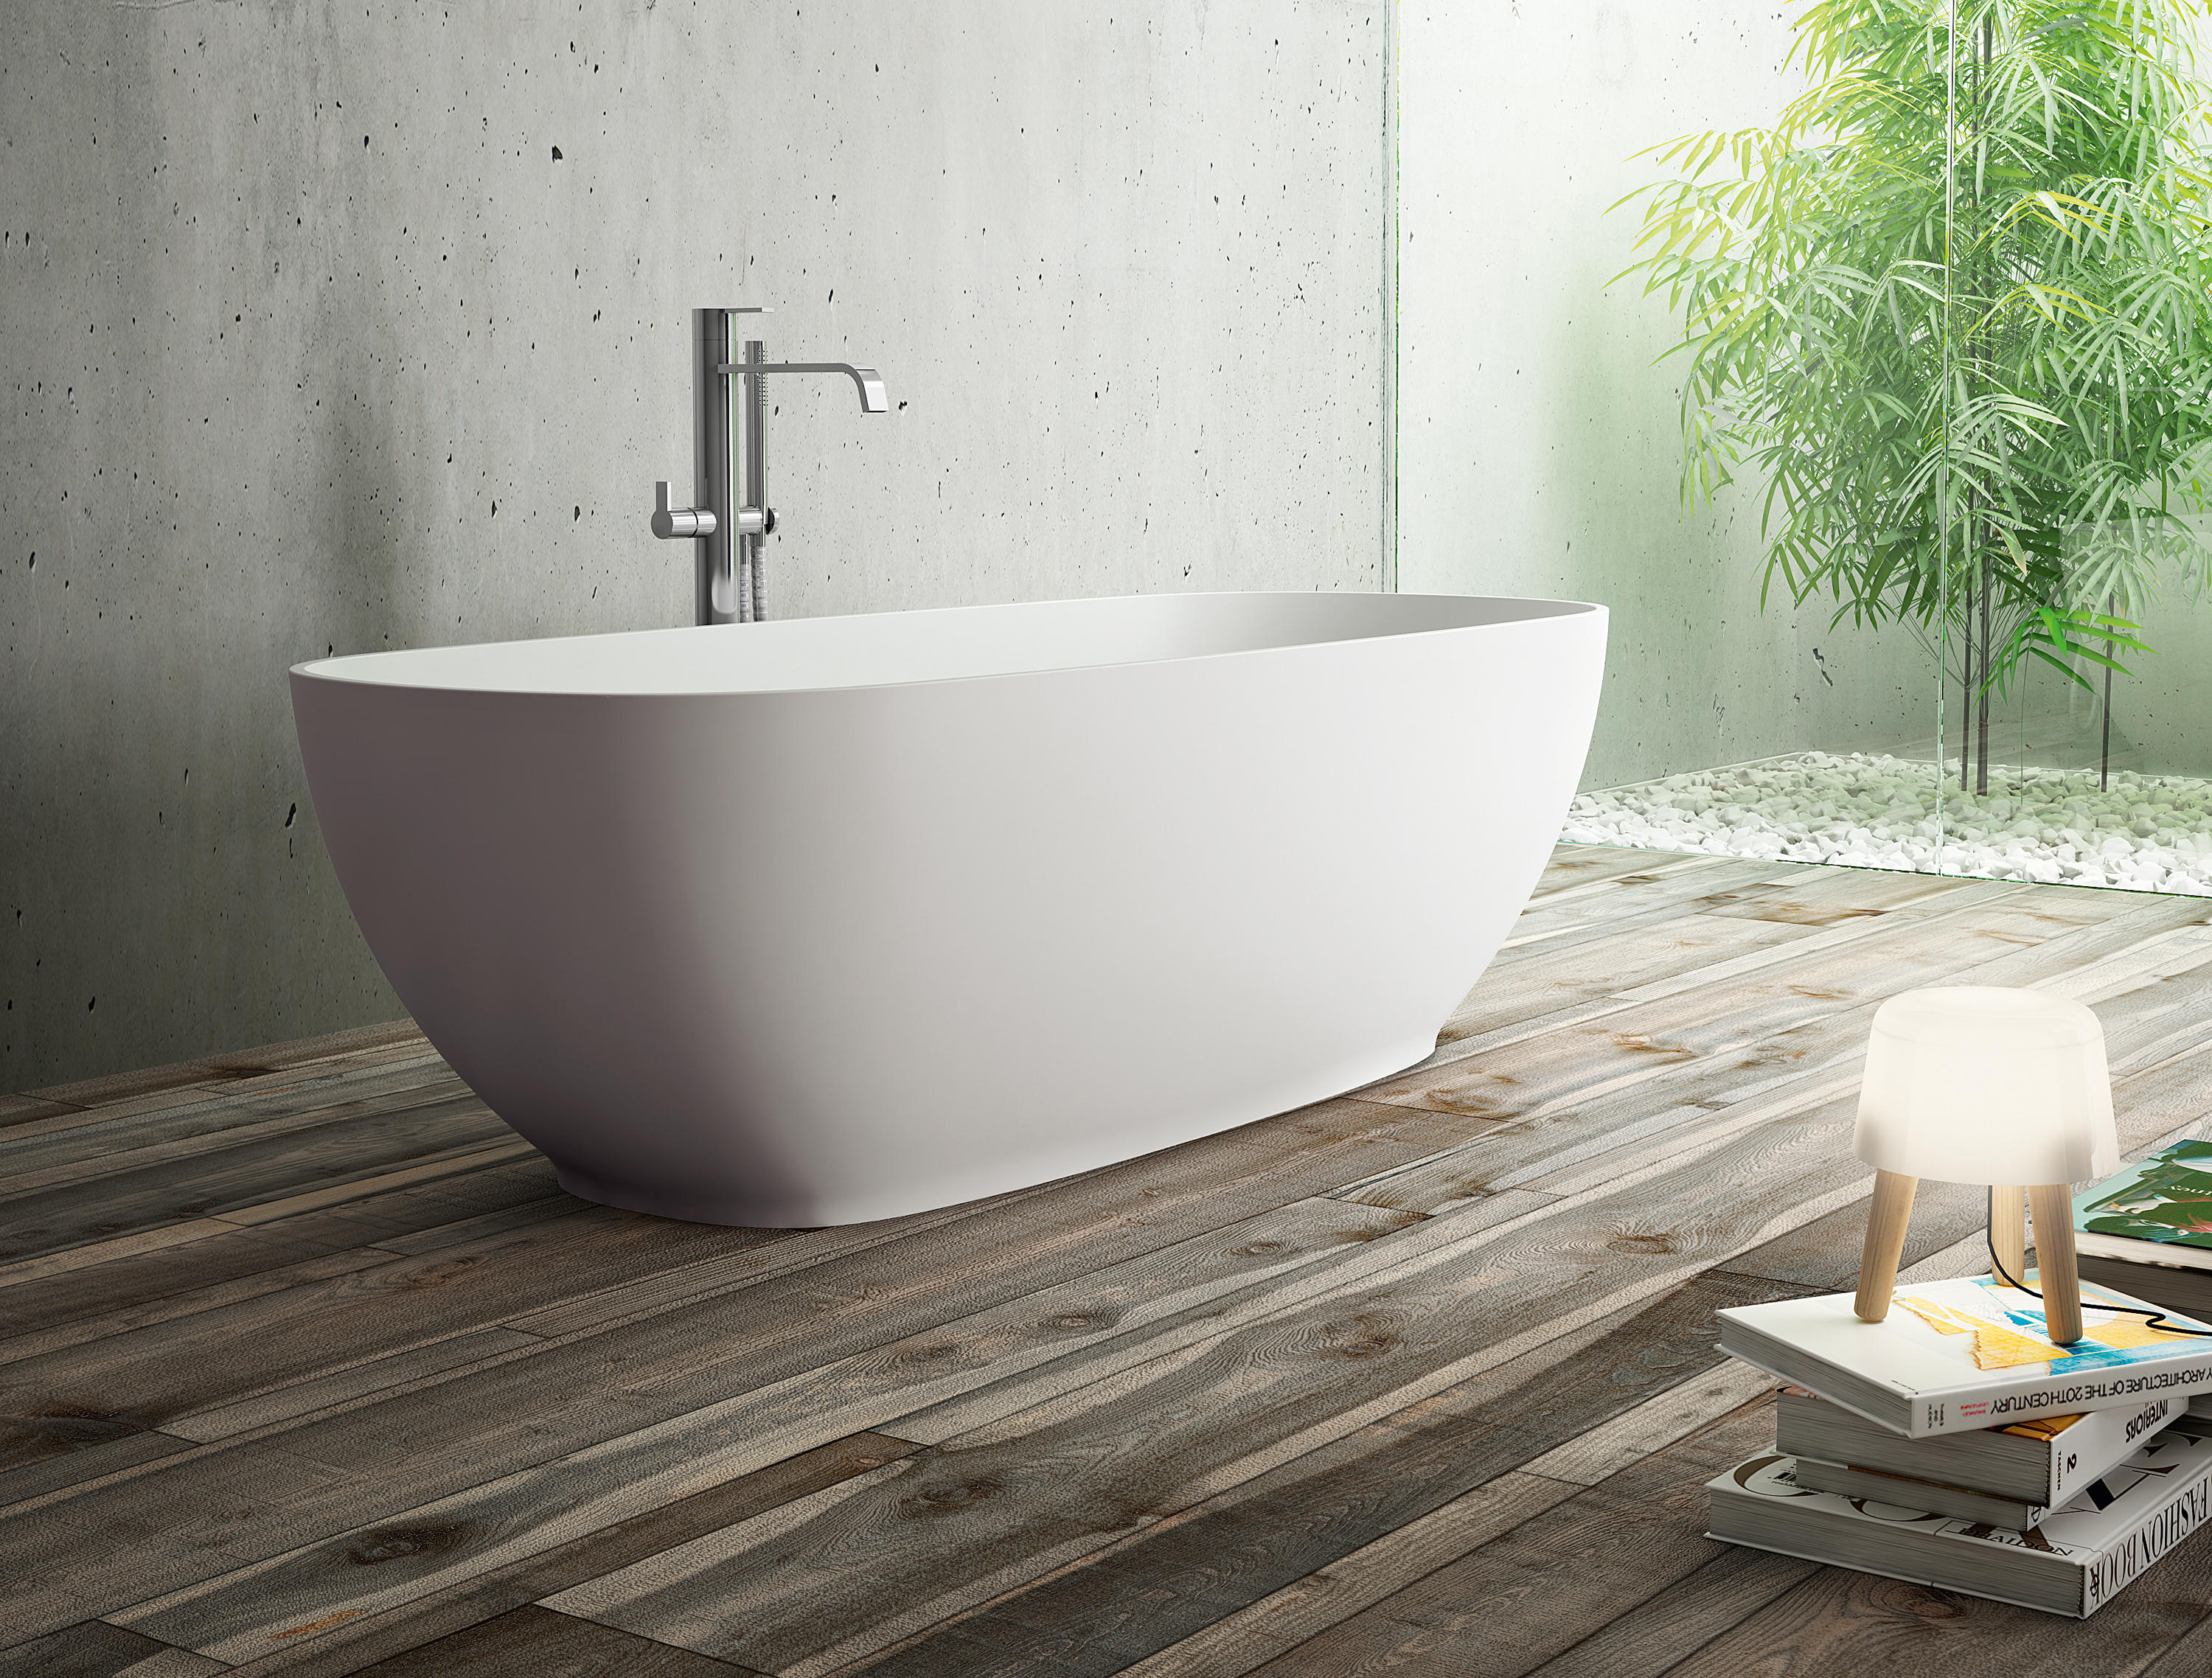 Vasca Da Bagno Freestanding Piccola.Oval Freestanding Vasche Idea Group Architonic